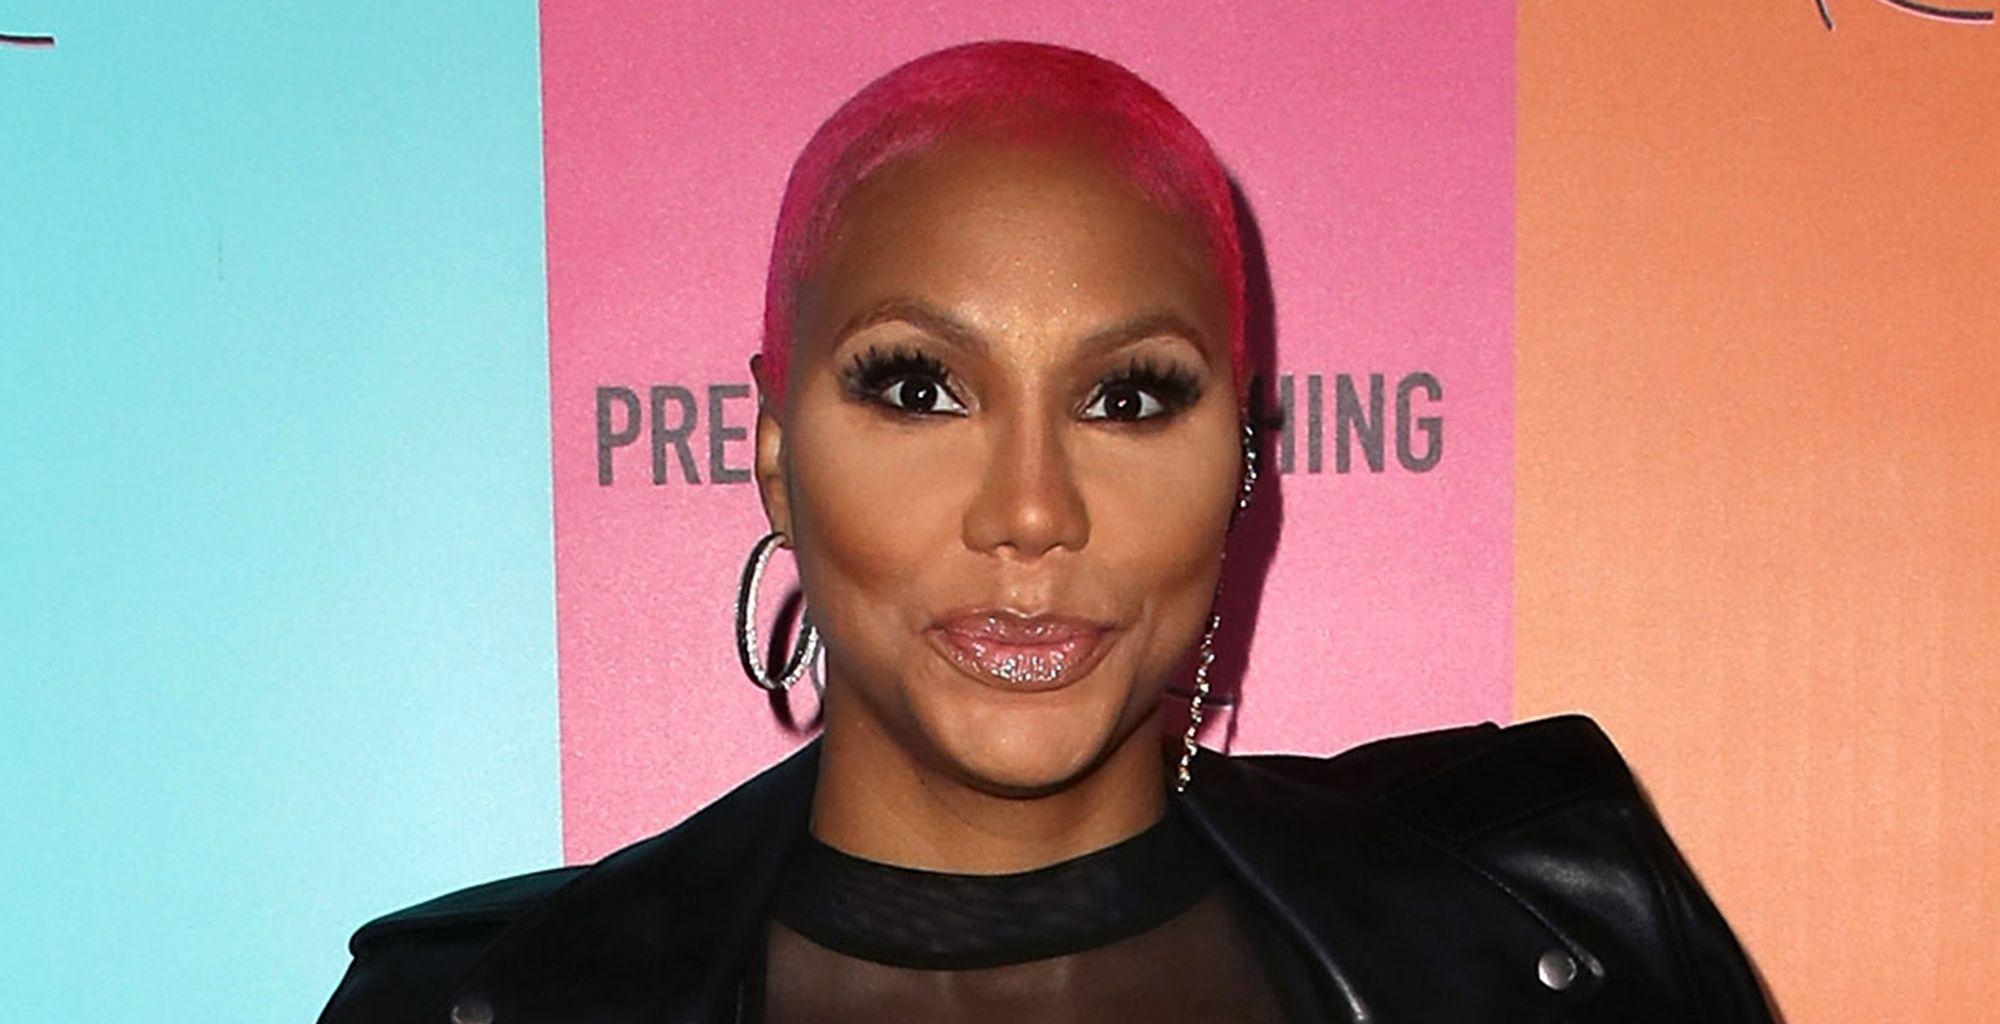 Tamar Braxton Has A Message For Fans About The Old Tamar - Check It Out Here